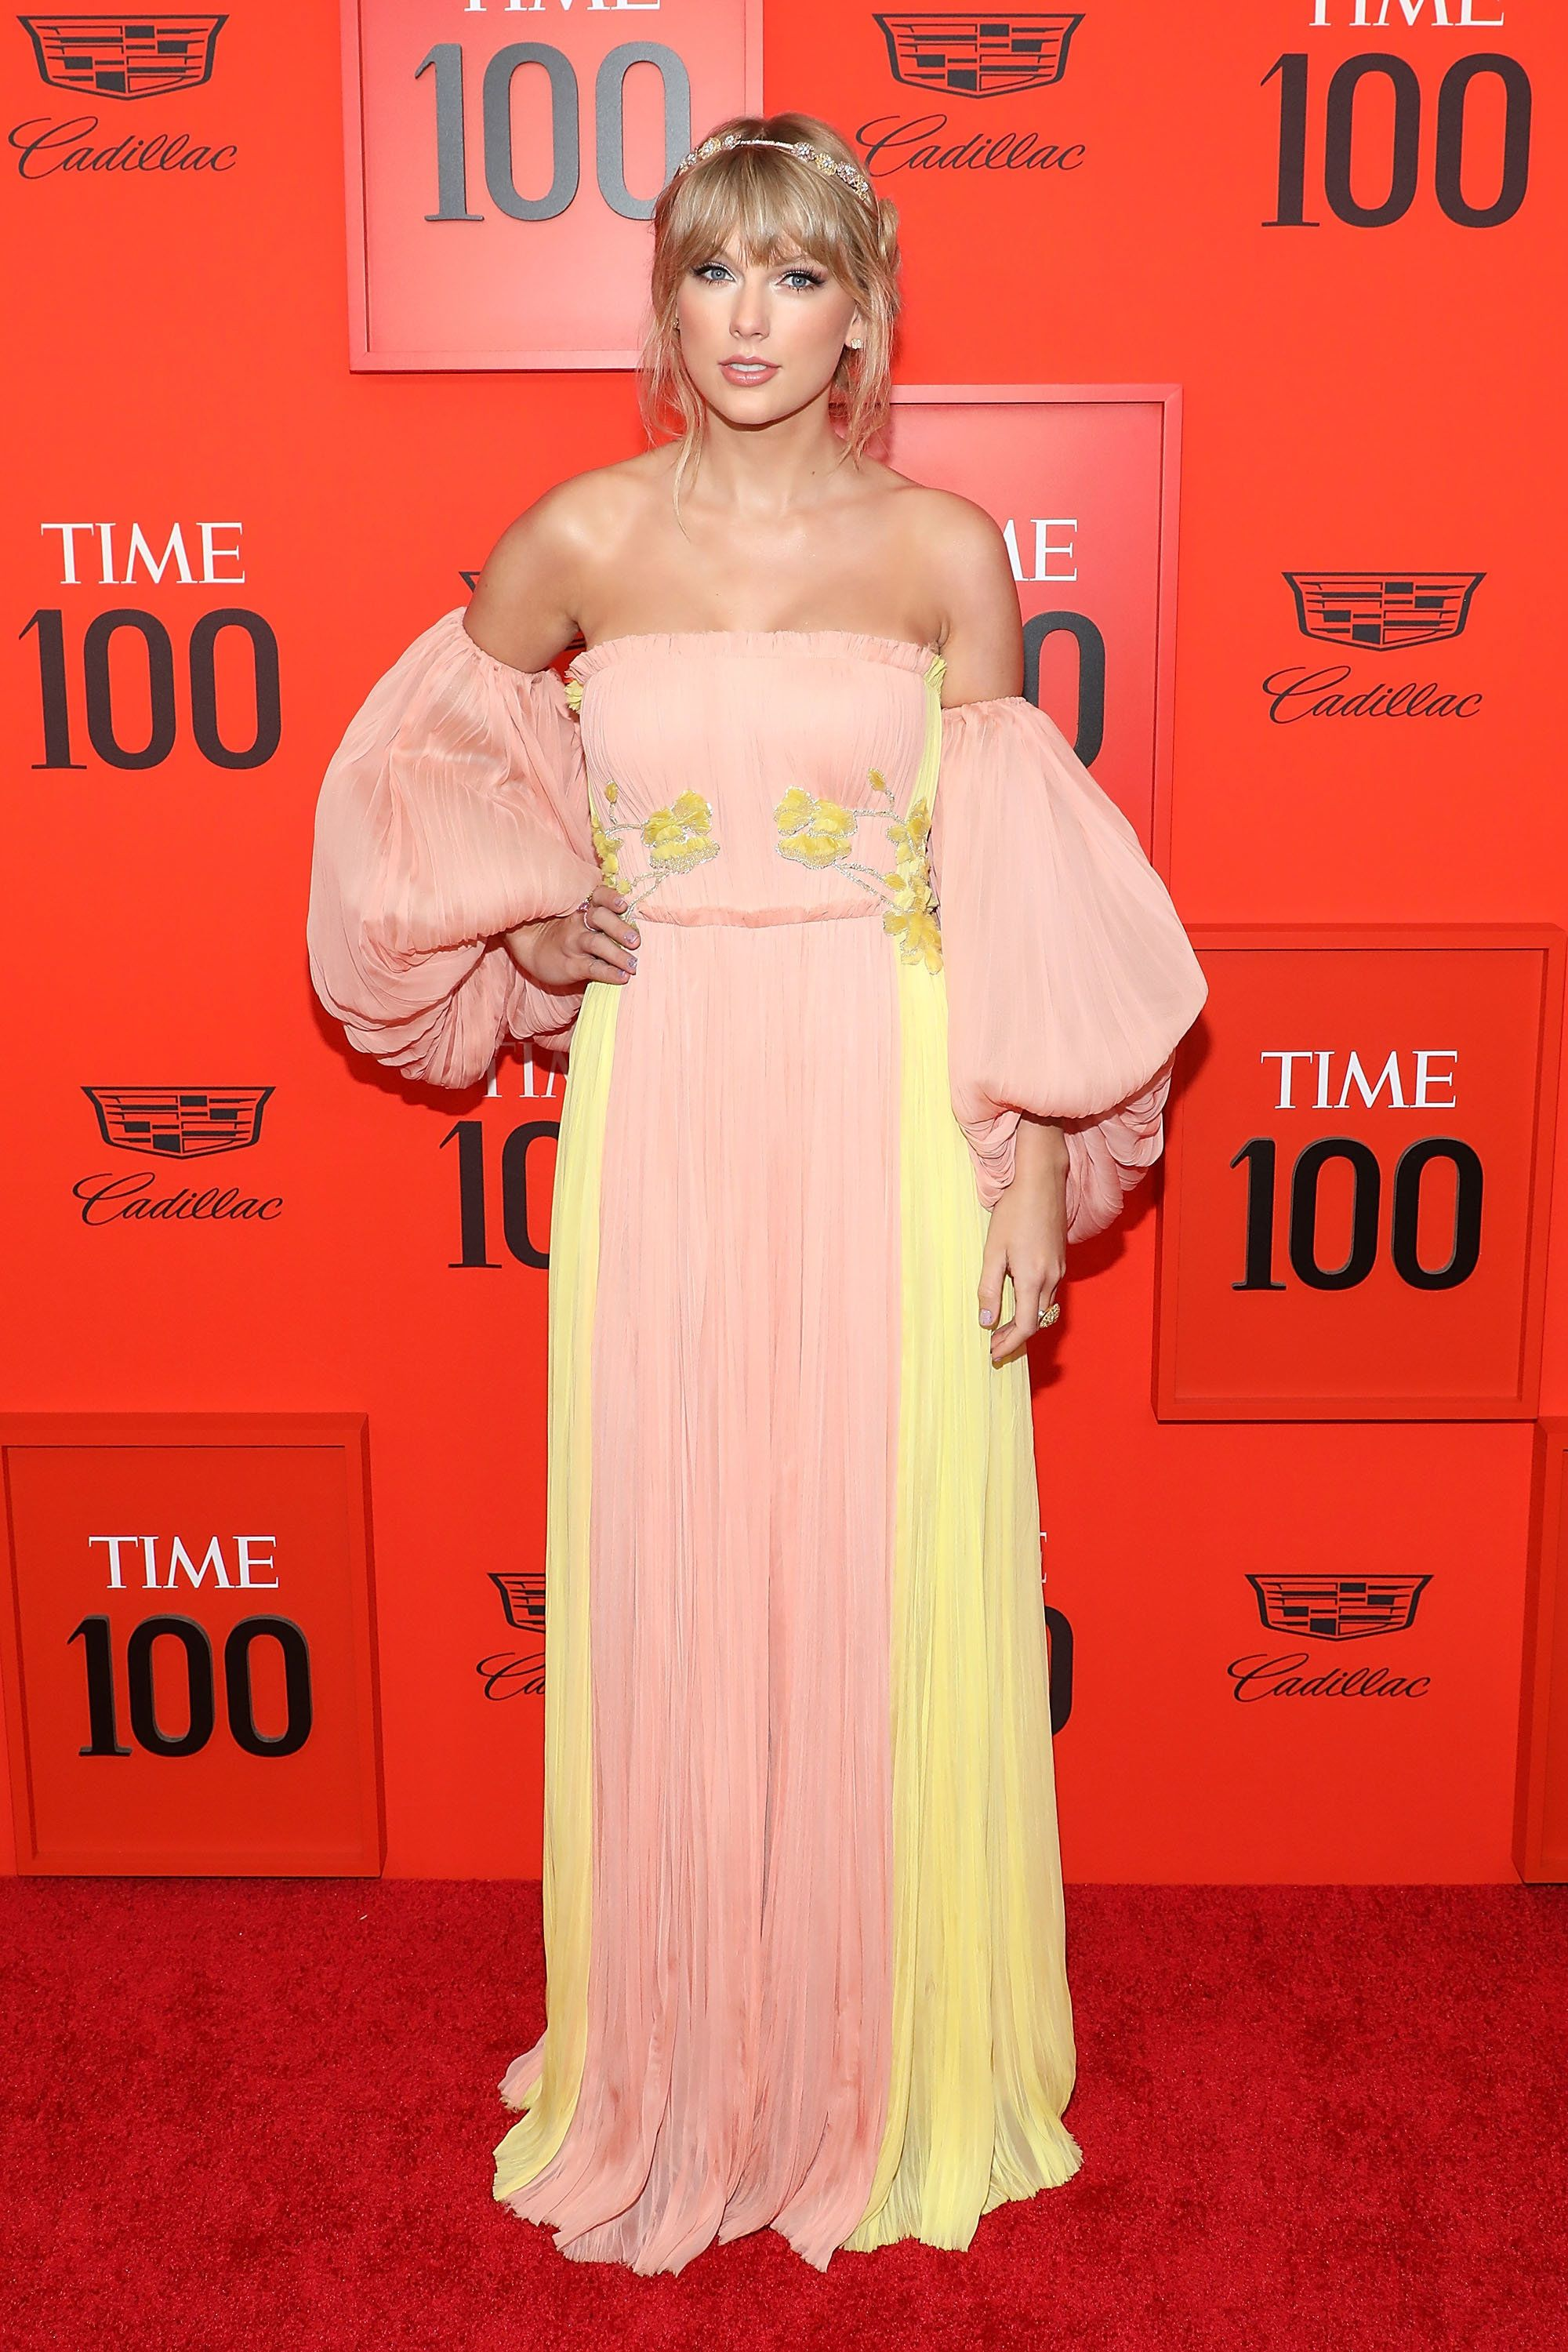 NEW YORK, NY - APRIL 23:  Taylor Swift attends the 2019 Time 100 Gala at Frederick P. Rose Hall, Jazz at Lincoln Center on April 23, 2019 in New York City.  (Photo by Taylor Hill/FilmMagic)